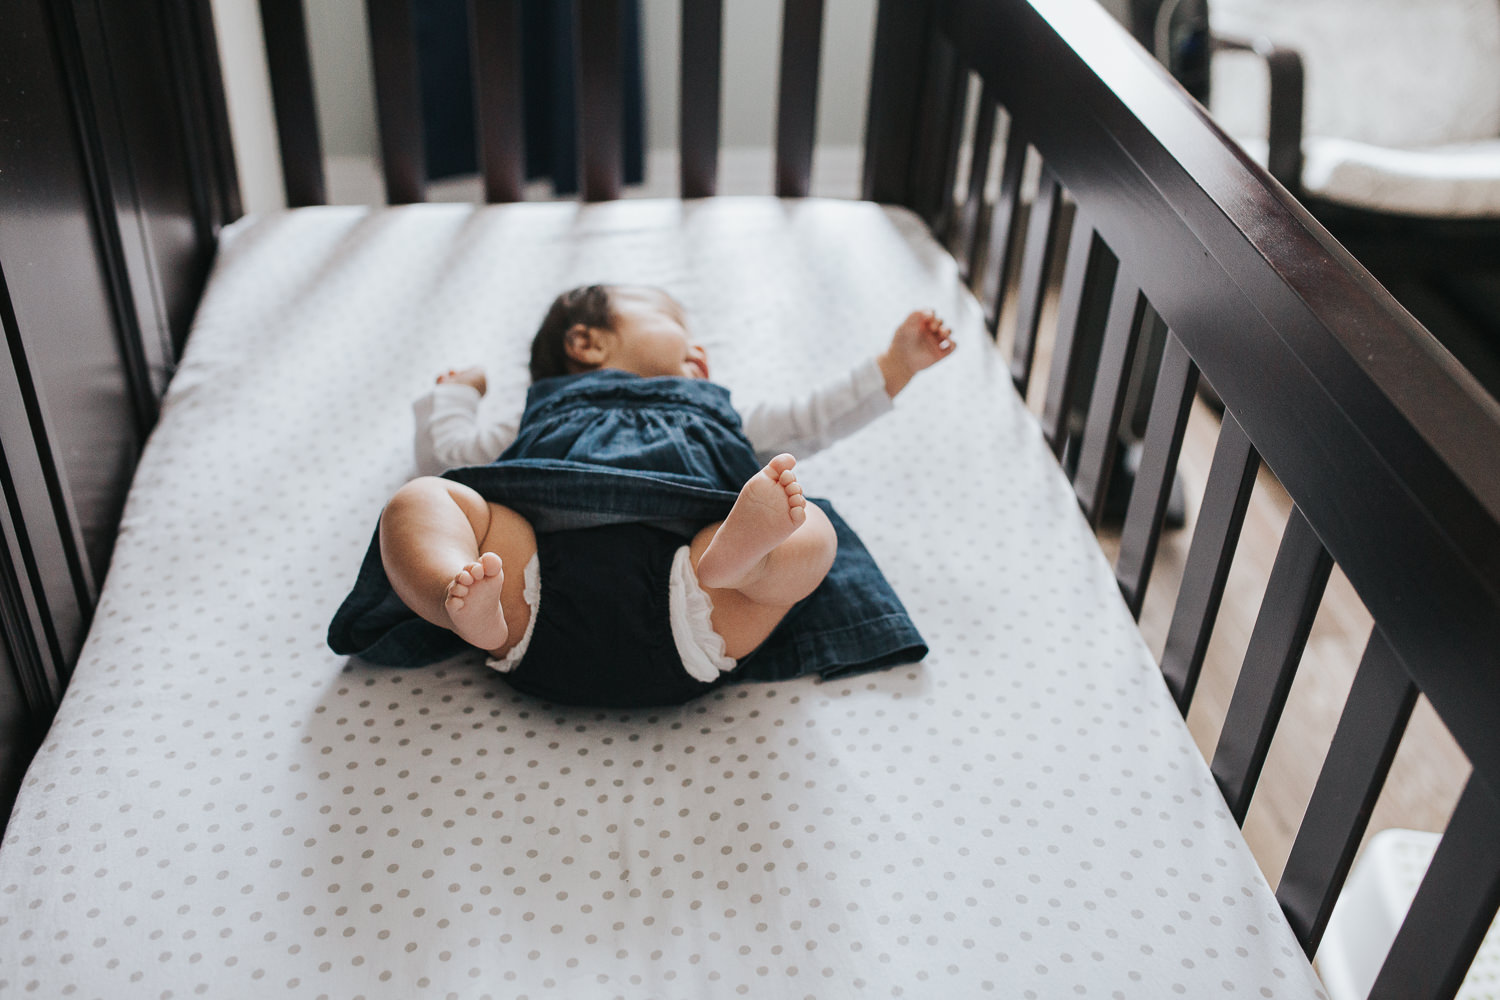 3 month old baby girl in blue dress lying in nursery crib with feet in air - Uxbridge Lifestyle Photography